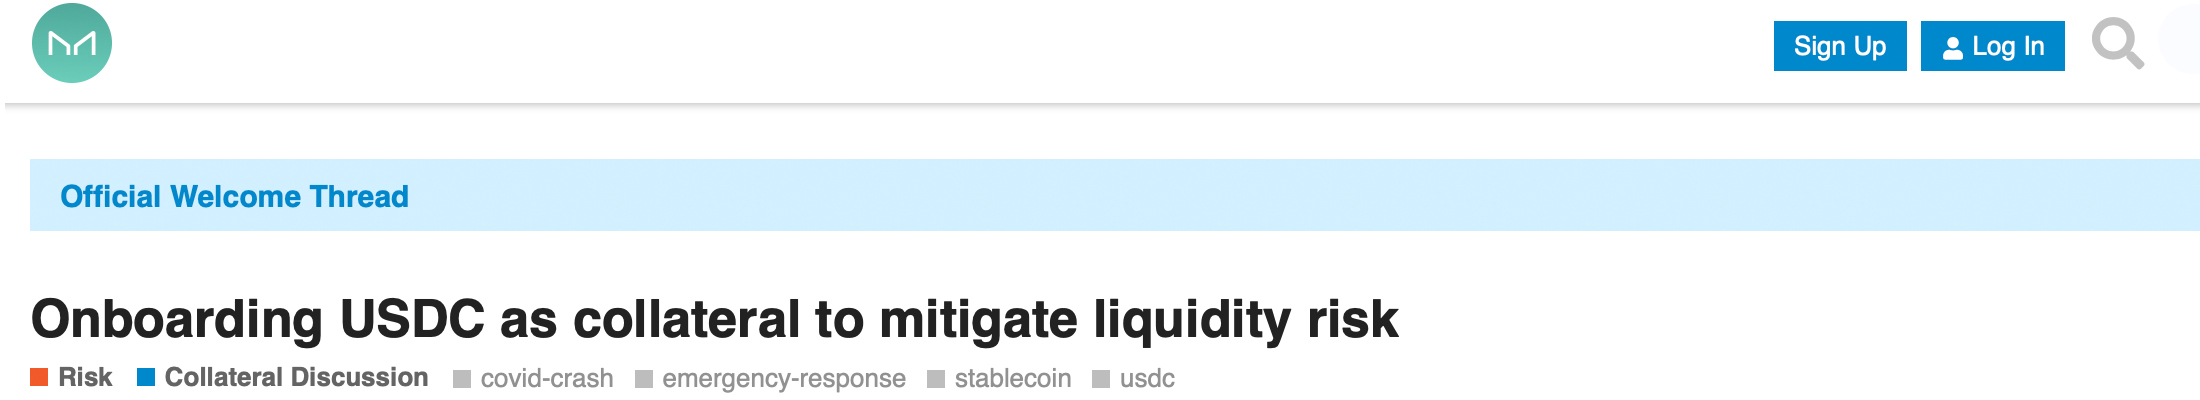 Devs Debate Using USDC for Collateral After DAI Stablecoin Faces Liquidity Issues